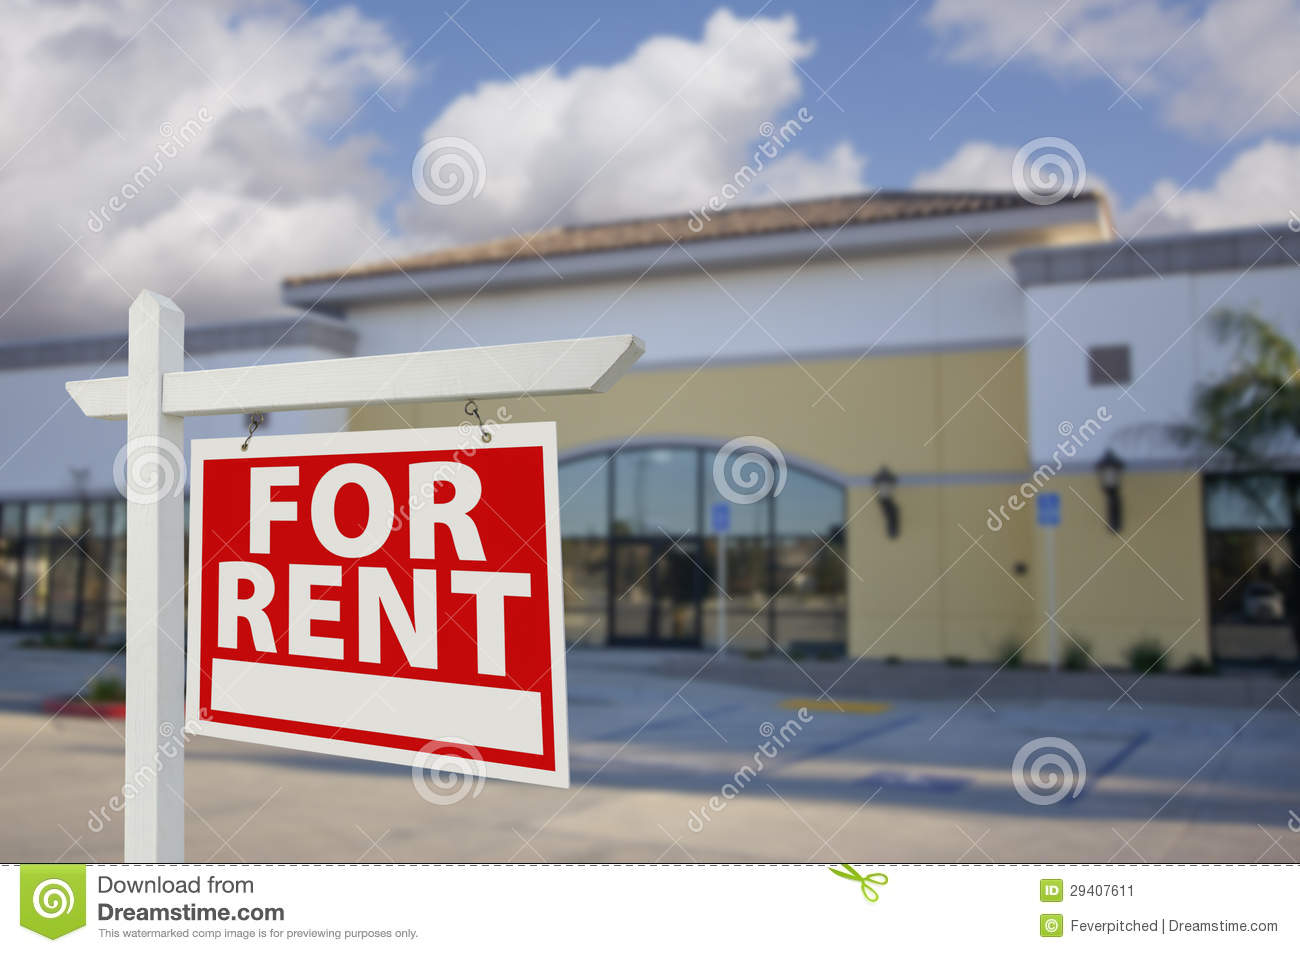 Vacant Retail Building with For Rent Real Estate Sign